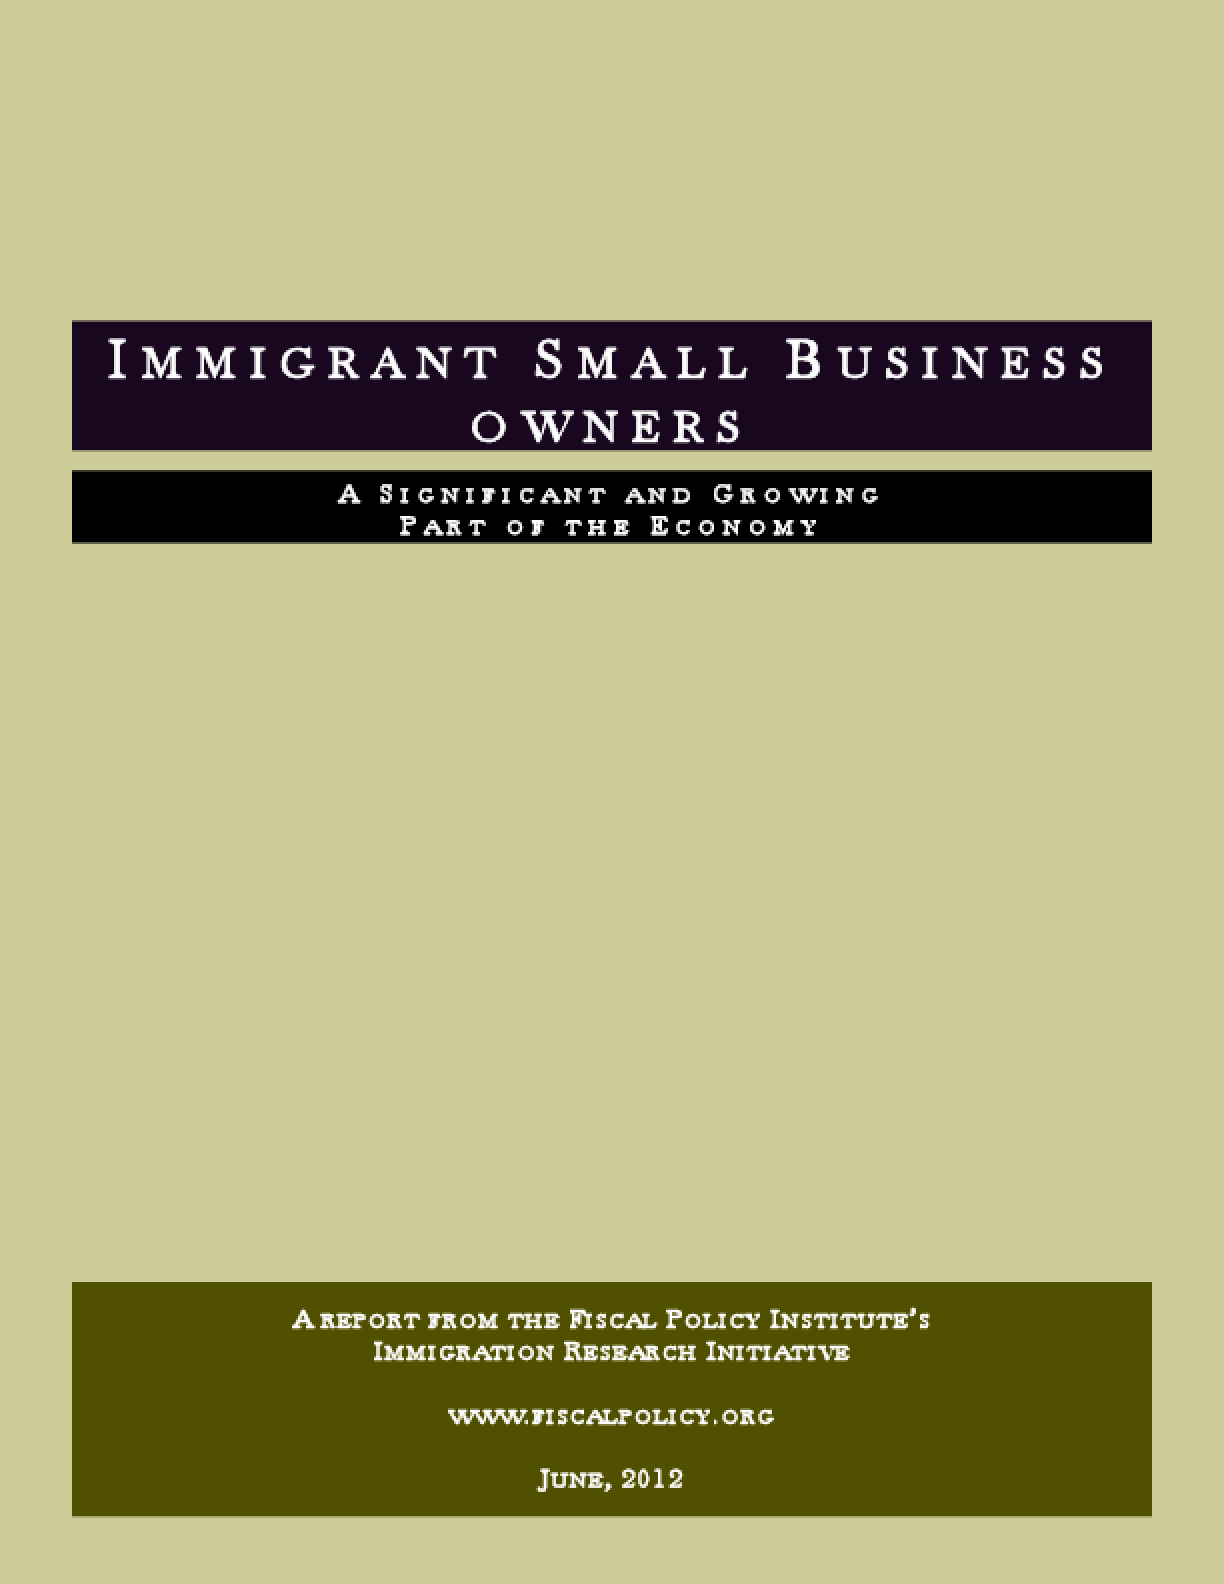 Immigrant Small Business Owners: A Significant and Growing Part of the Economy